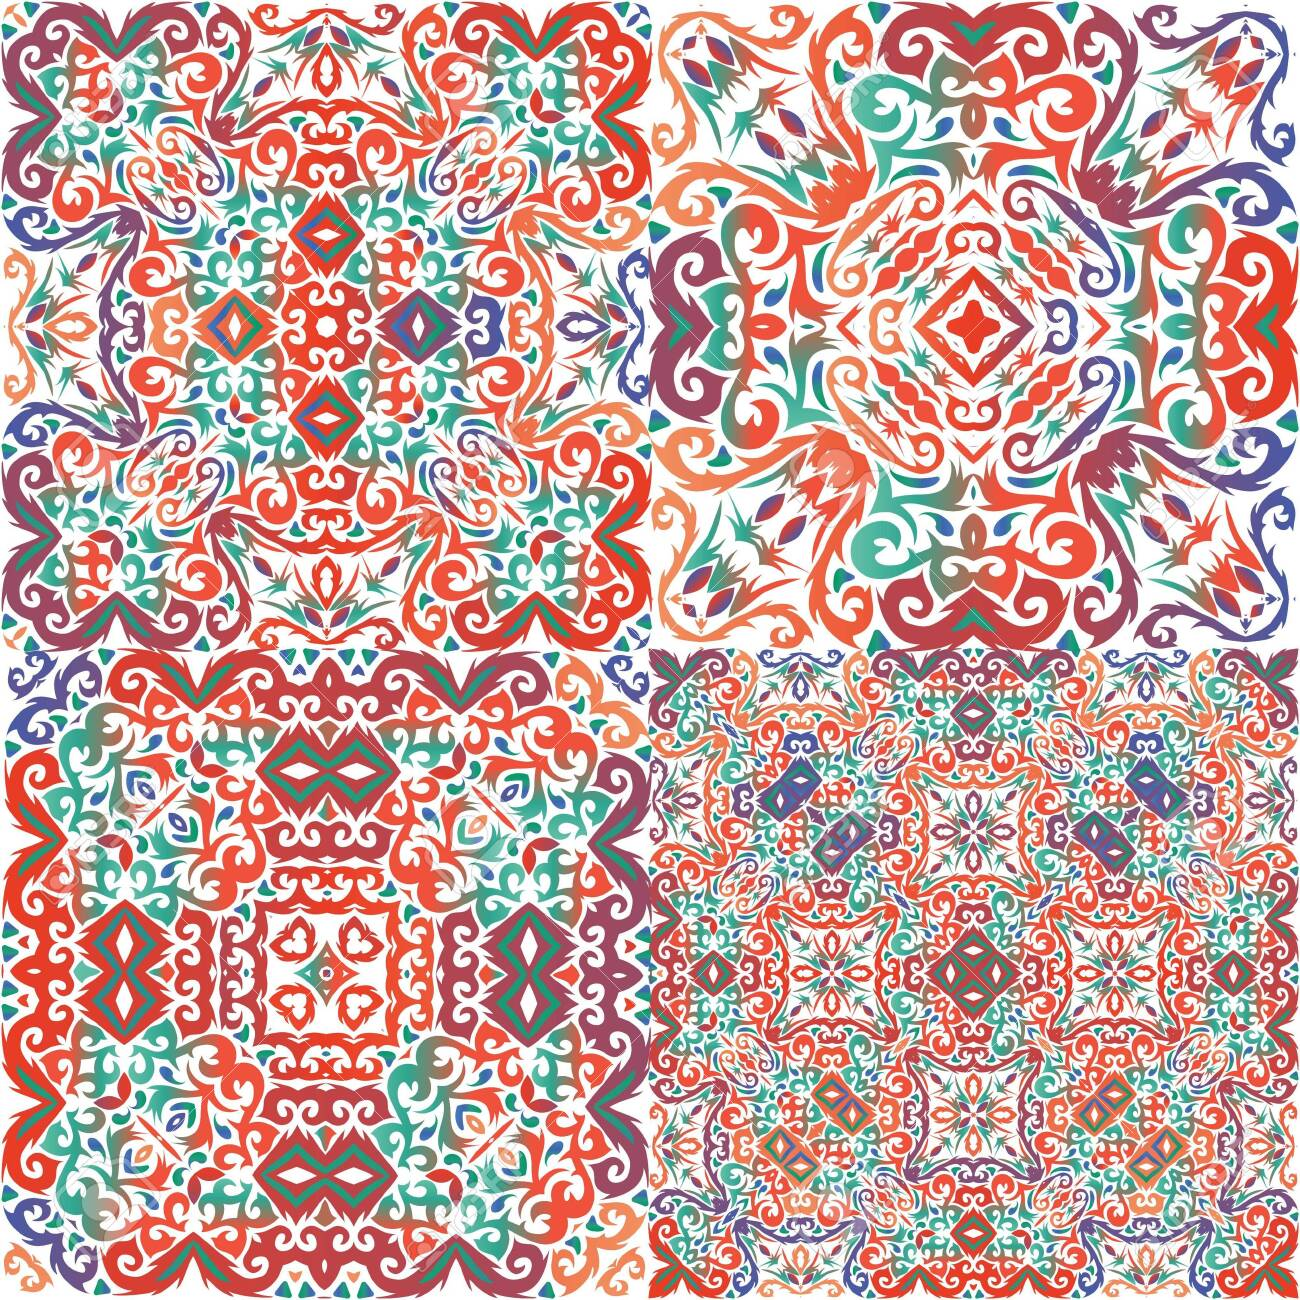 Ornamental talavera mexico tiles decor. Collection of vector seamless patterns. Kitchen design. Red gorgeous flower folk prints for linens, smartphone cases, scrapbooking, bags or T-shirts. - 140243453